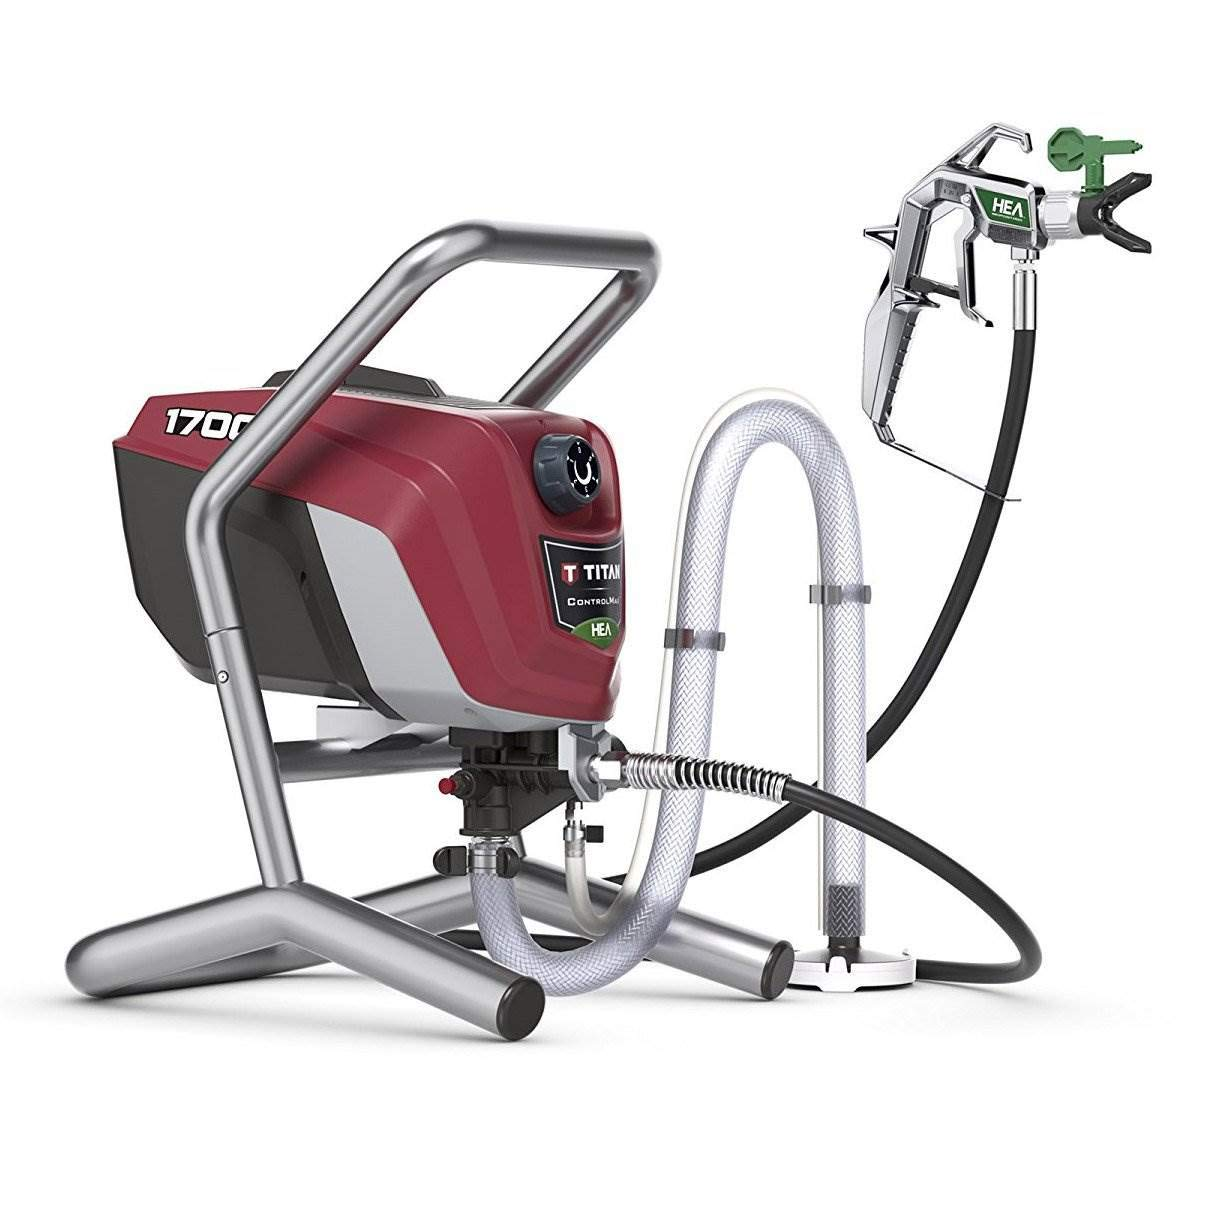 Titan Tool 0580009 Airless Paint Sprayer Image